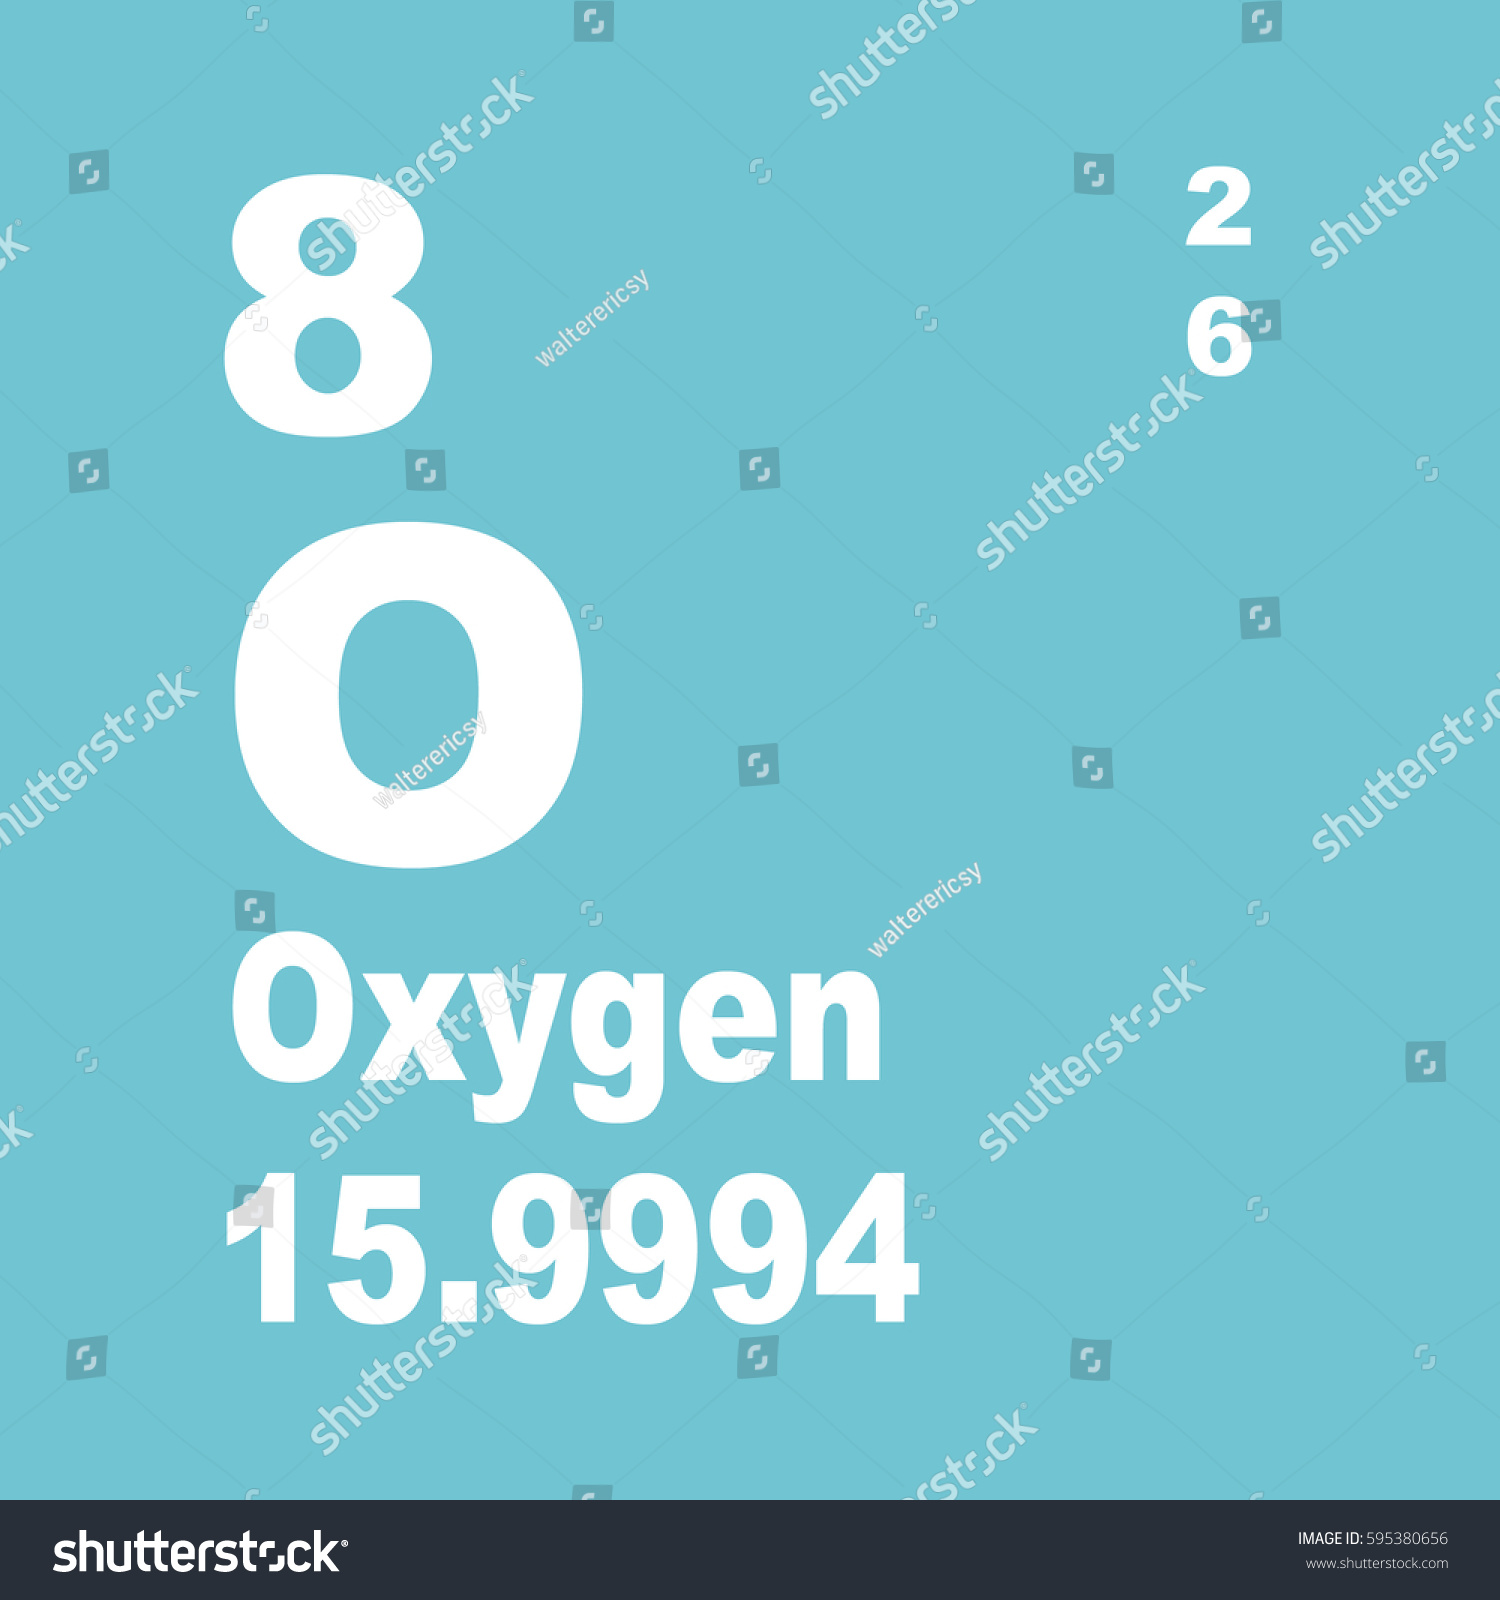 Oxygen periodic table facts gallery periodic table images oxygen periodic table image collections periodic table images oxygen periodic table elements stock illustration 595380656 oxygen gamestrikefo Images